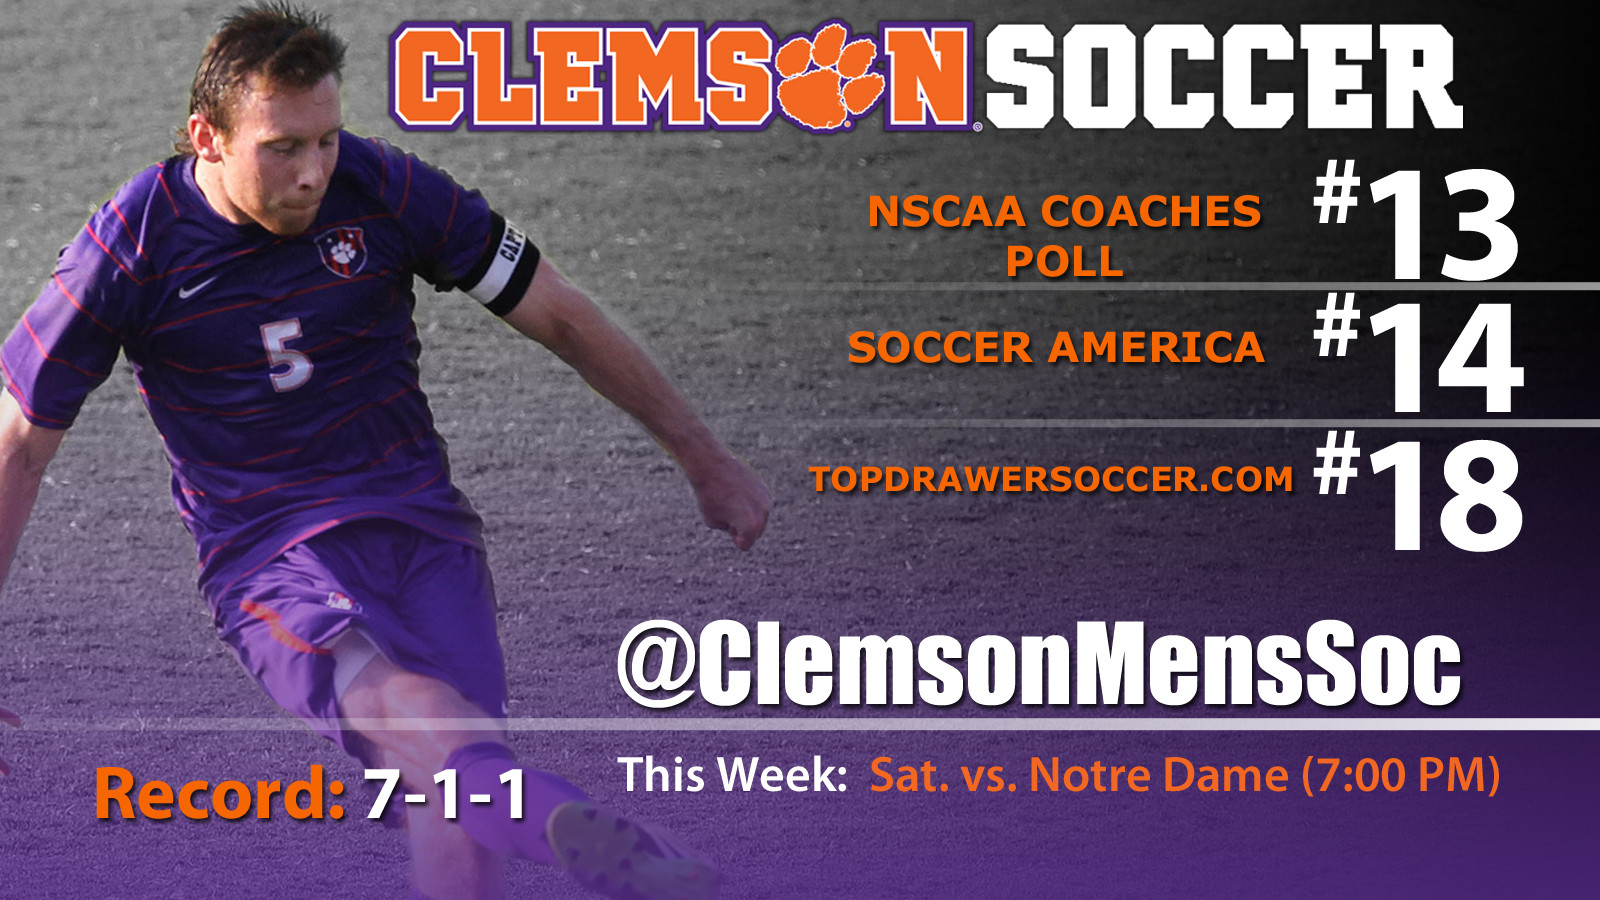 Clemson Men?s Soccer Ranked in Top 20